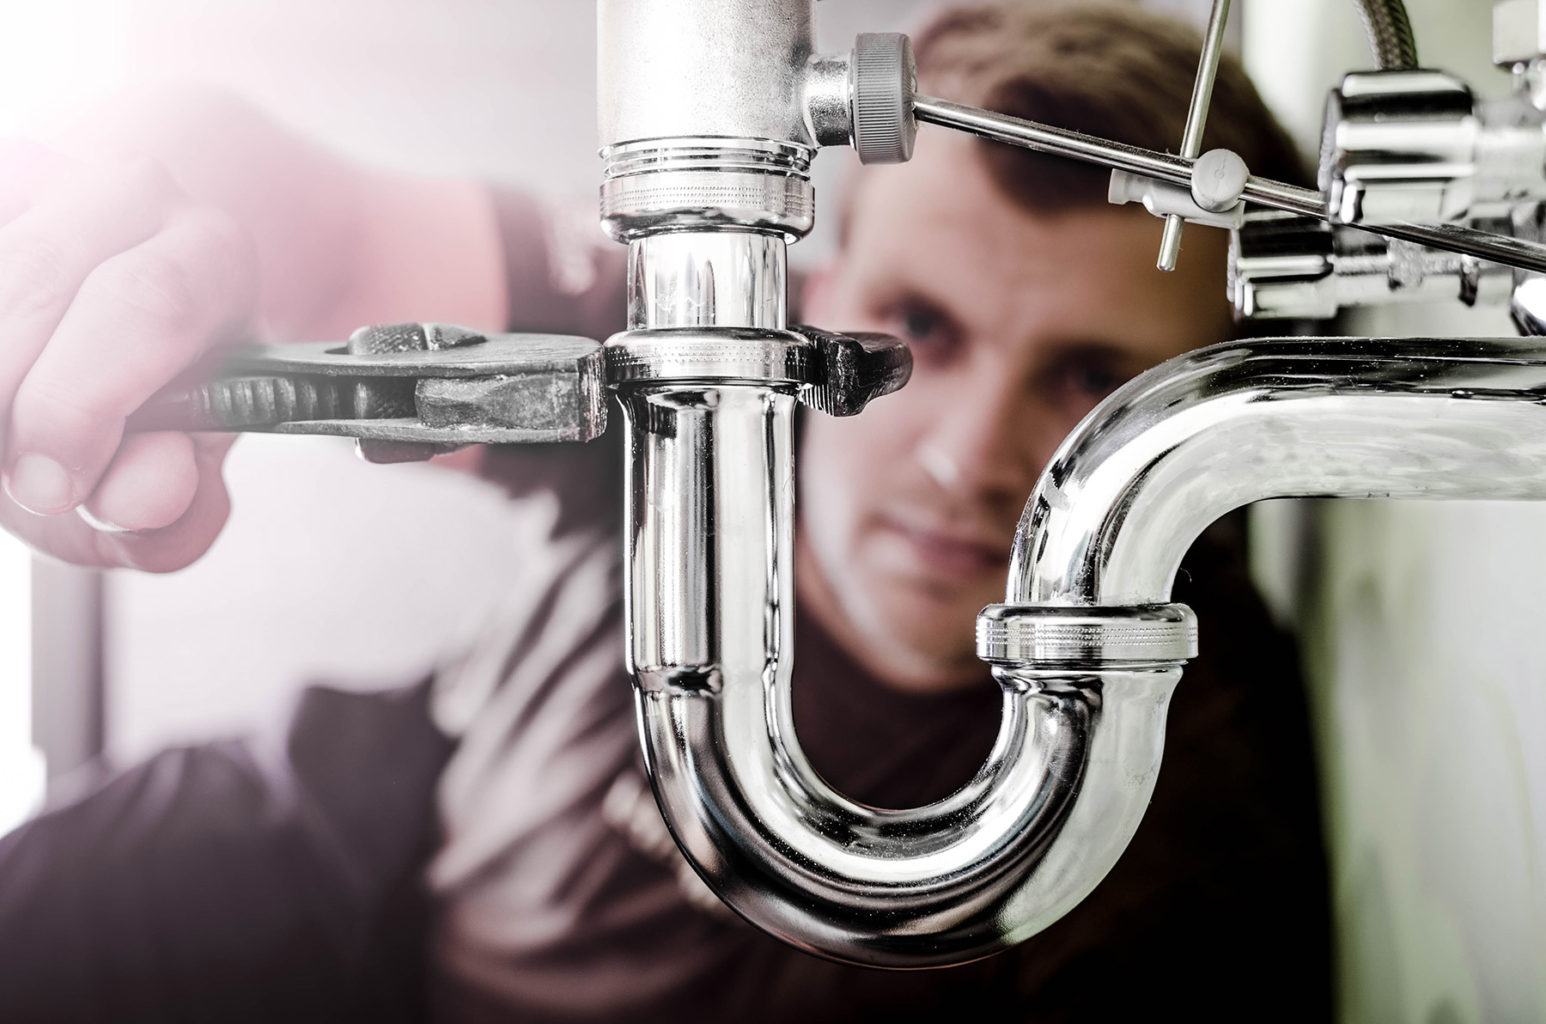 Plumbers in Canberra - Call 24/7 on 0427 625 716